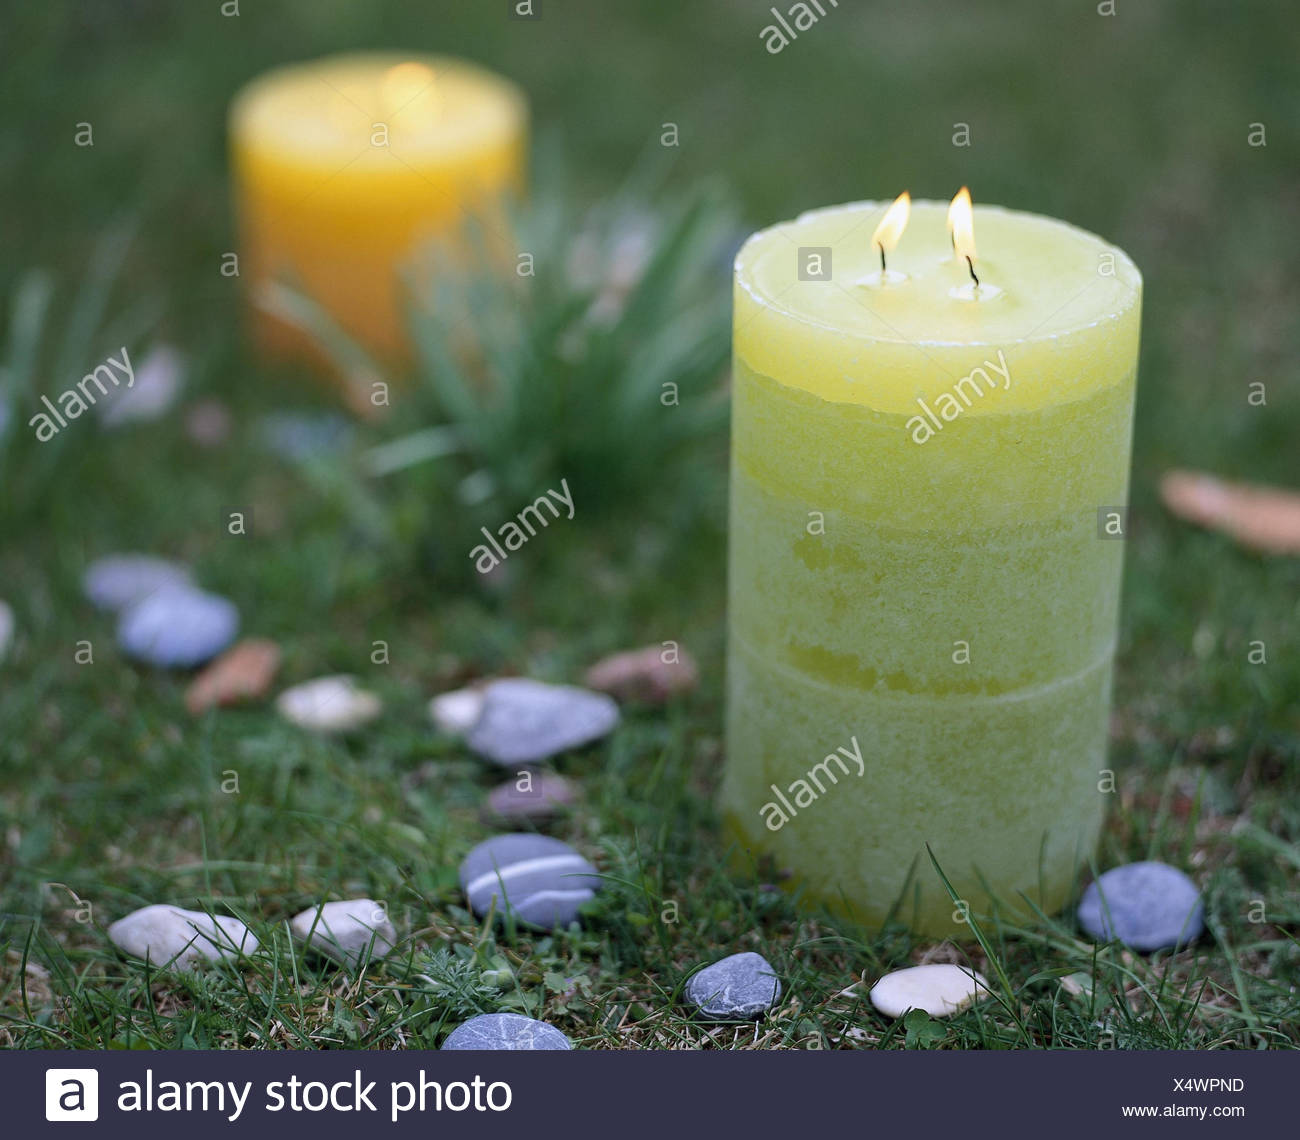 Meadow, candles, blast, stone circles, Still life, candle, odour candles, flames, light, candle light, lighted, colour, passed away, grass, Esotherik, mysticism, Feng Shui, circles, wicks, colourfully, differently, wax candles, symbolism, lighting, stones - Stock Image